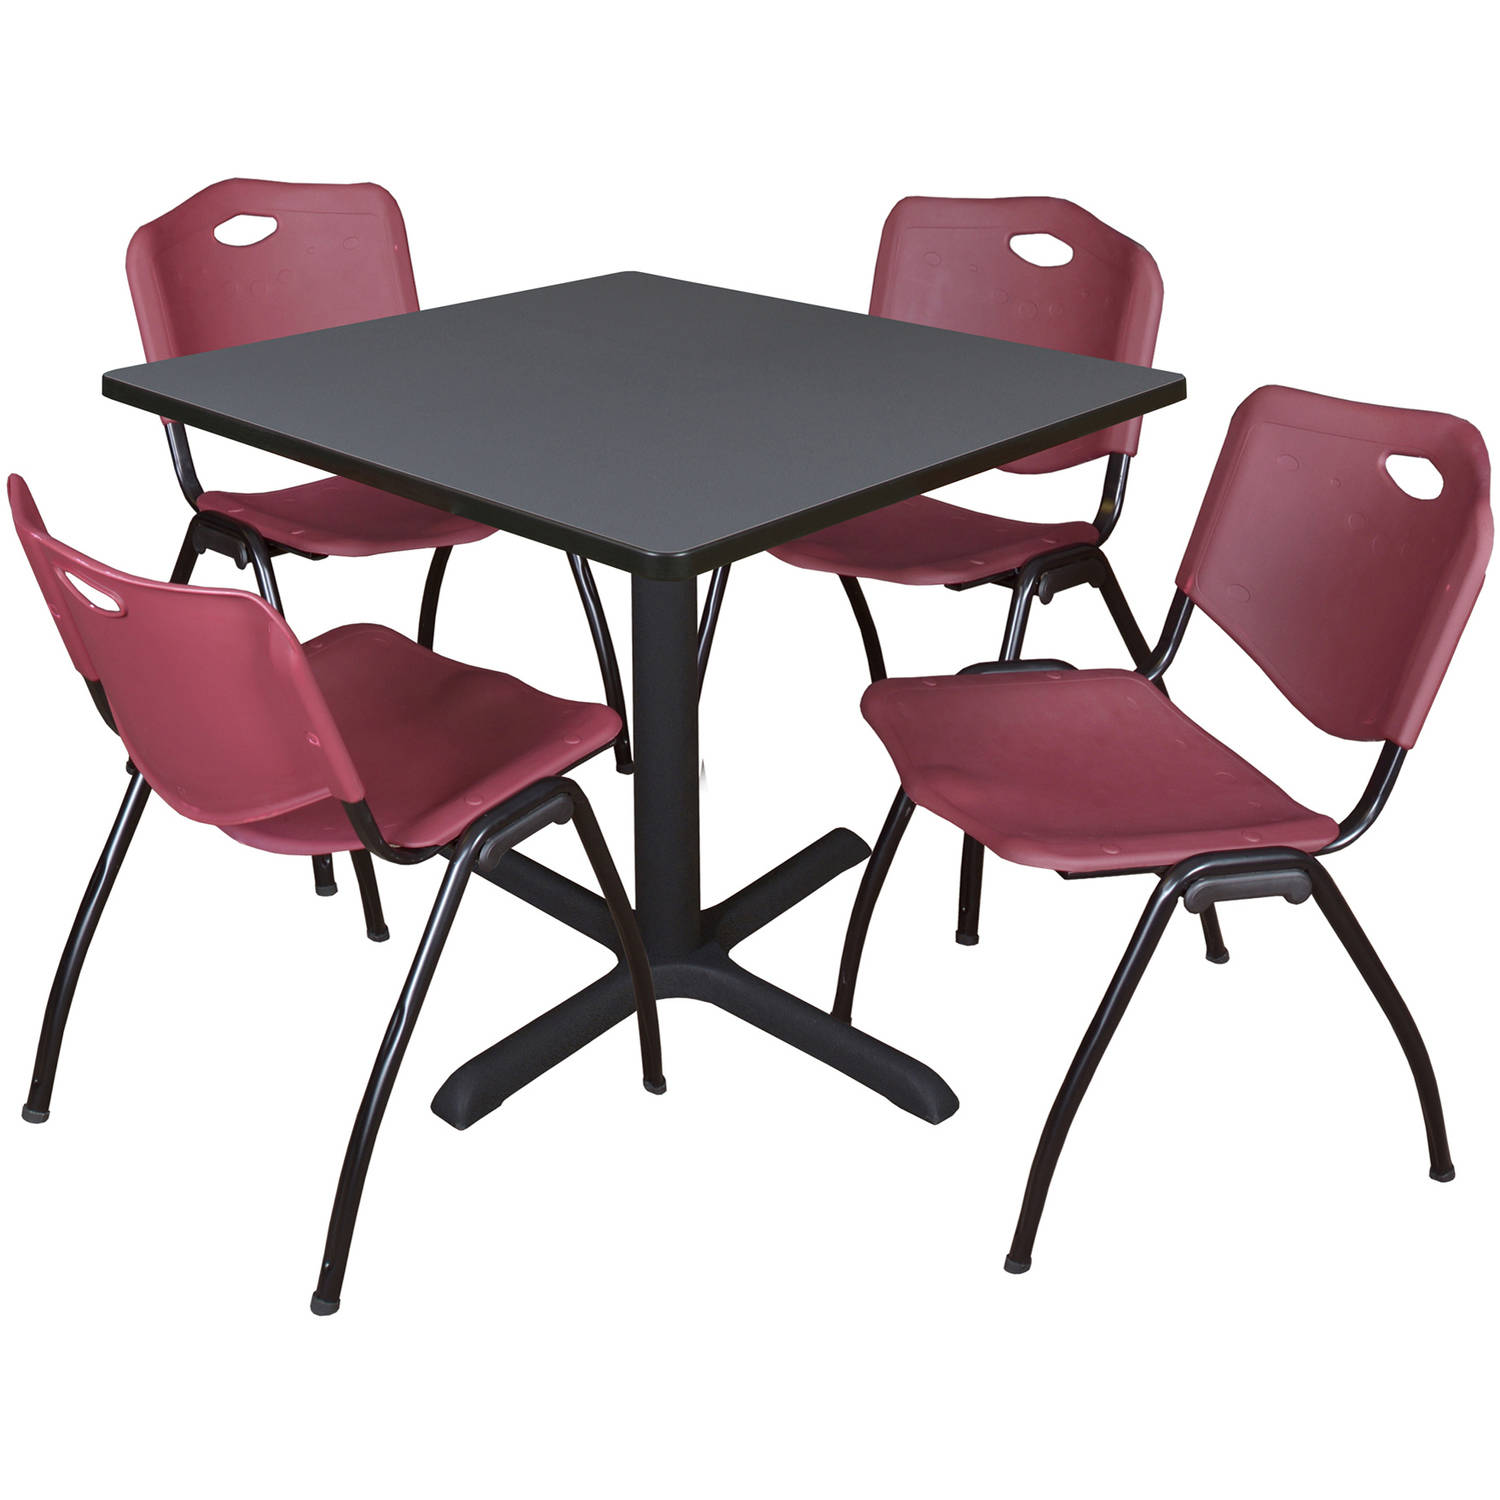 "Cain 36"" Grey Square Breakroom Table and 4 'M' Stack Chairs, Multiple Colors"